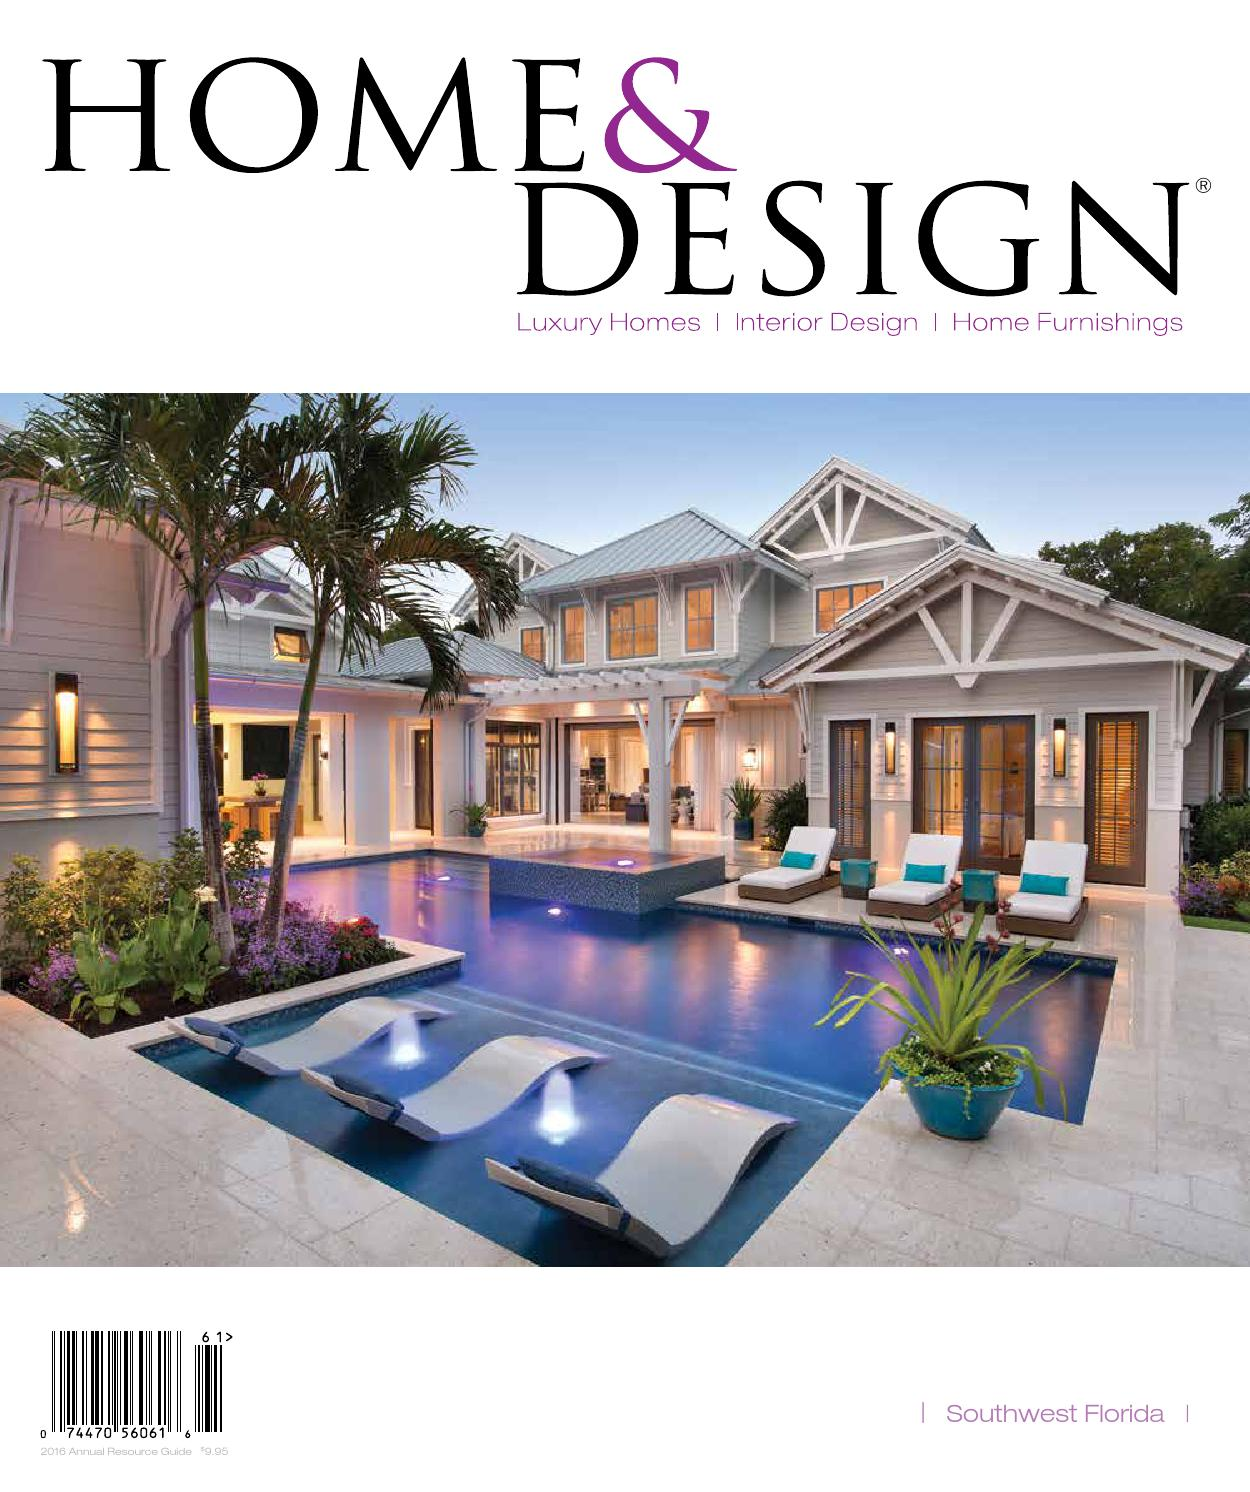 Home Design Magazine Naples Florida Home And Design Magazine Naples Trend Home  Design And Decor